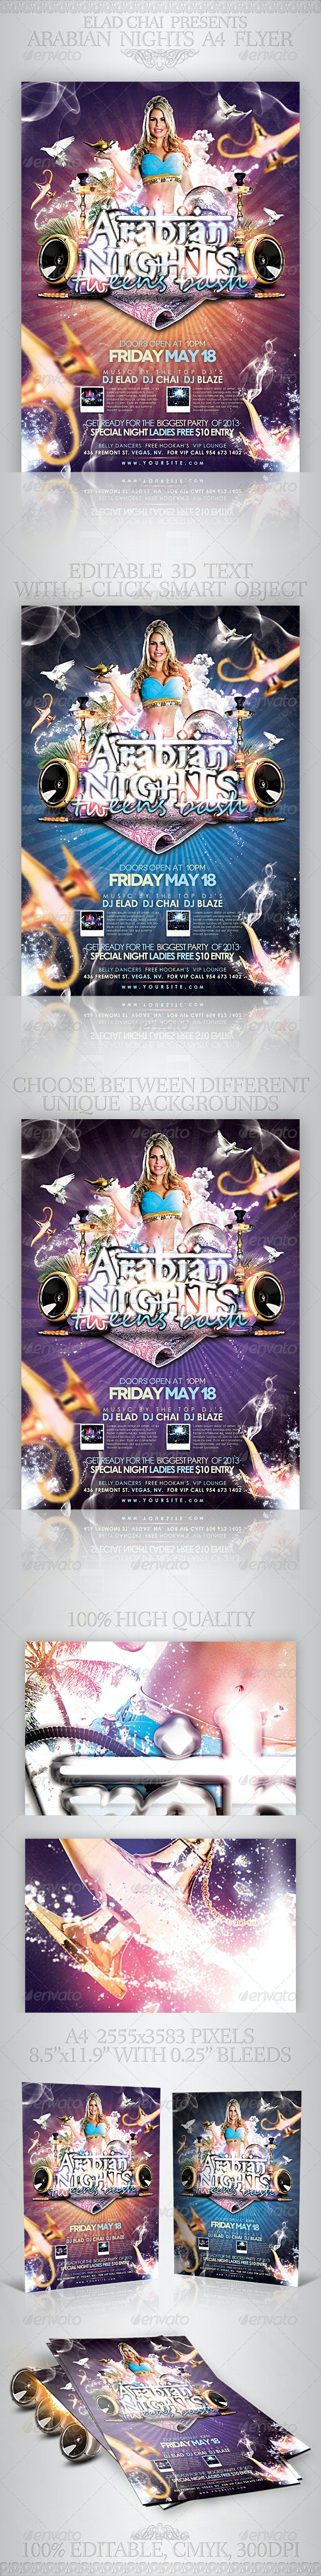 Arabian Nights A4 Flyer Poster Template - Events Flyers